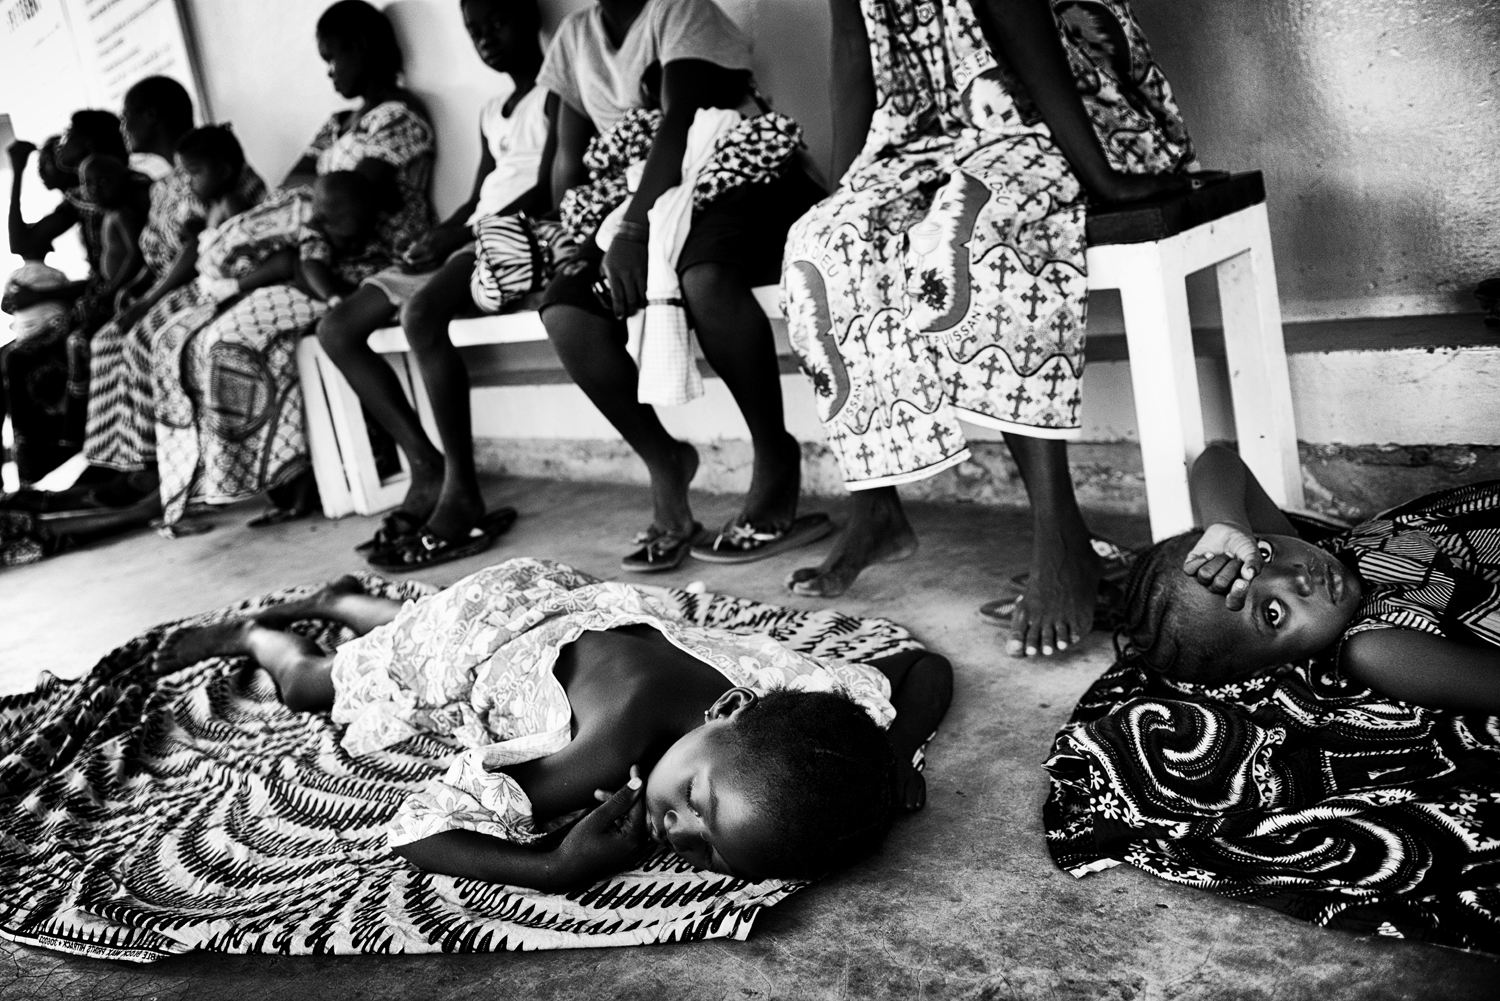 Many children often reach the emergency hospital alone to receive care as a result of disease or violence. Jan. 29, 2014.